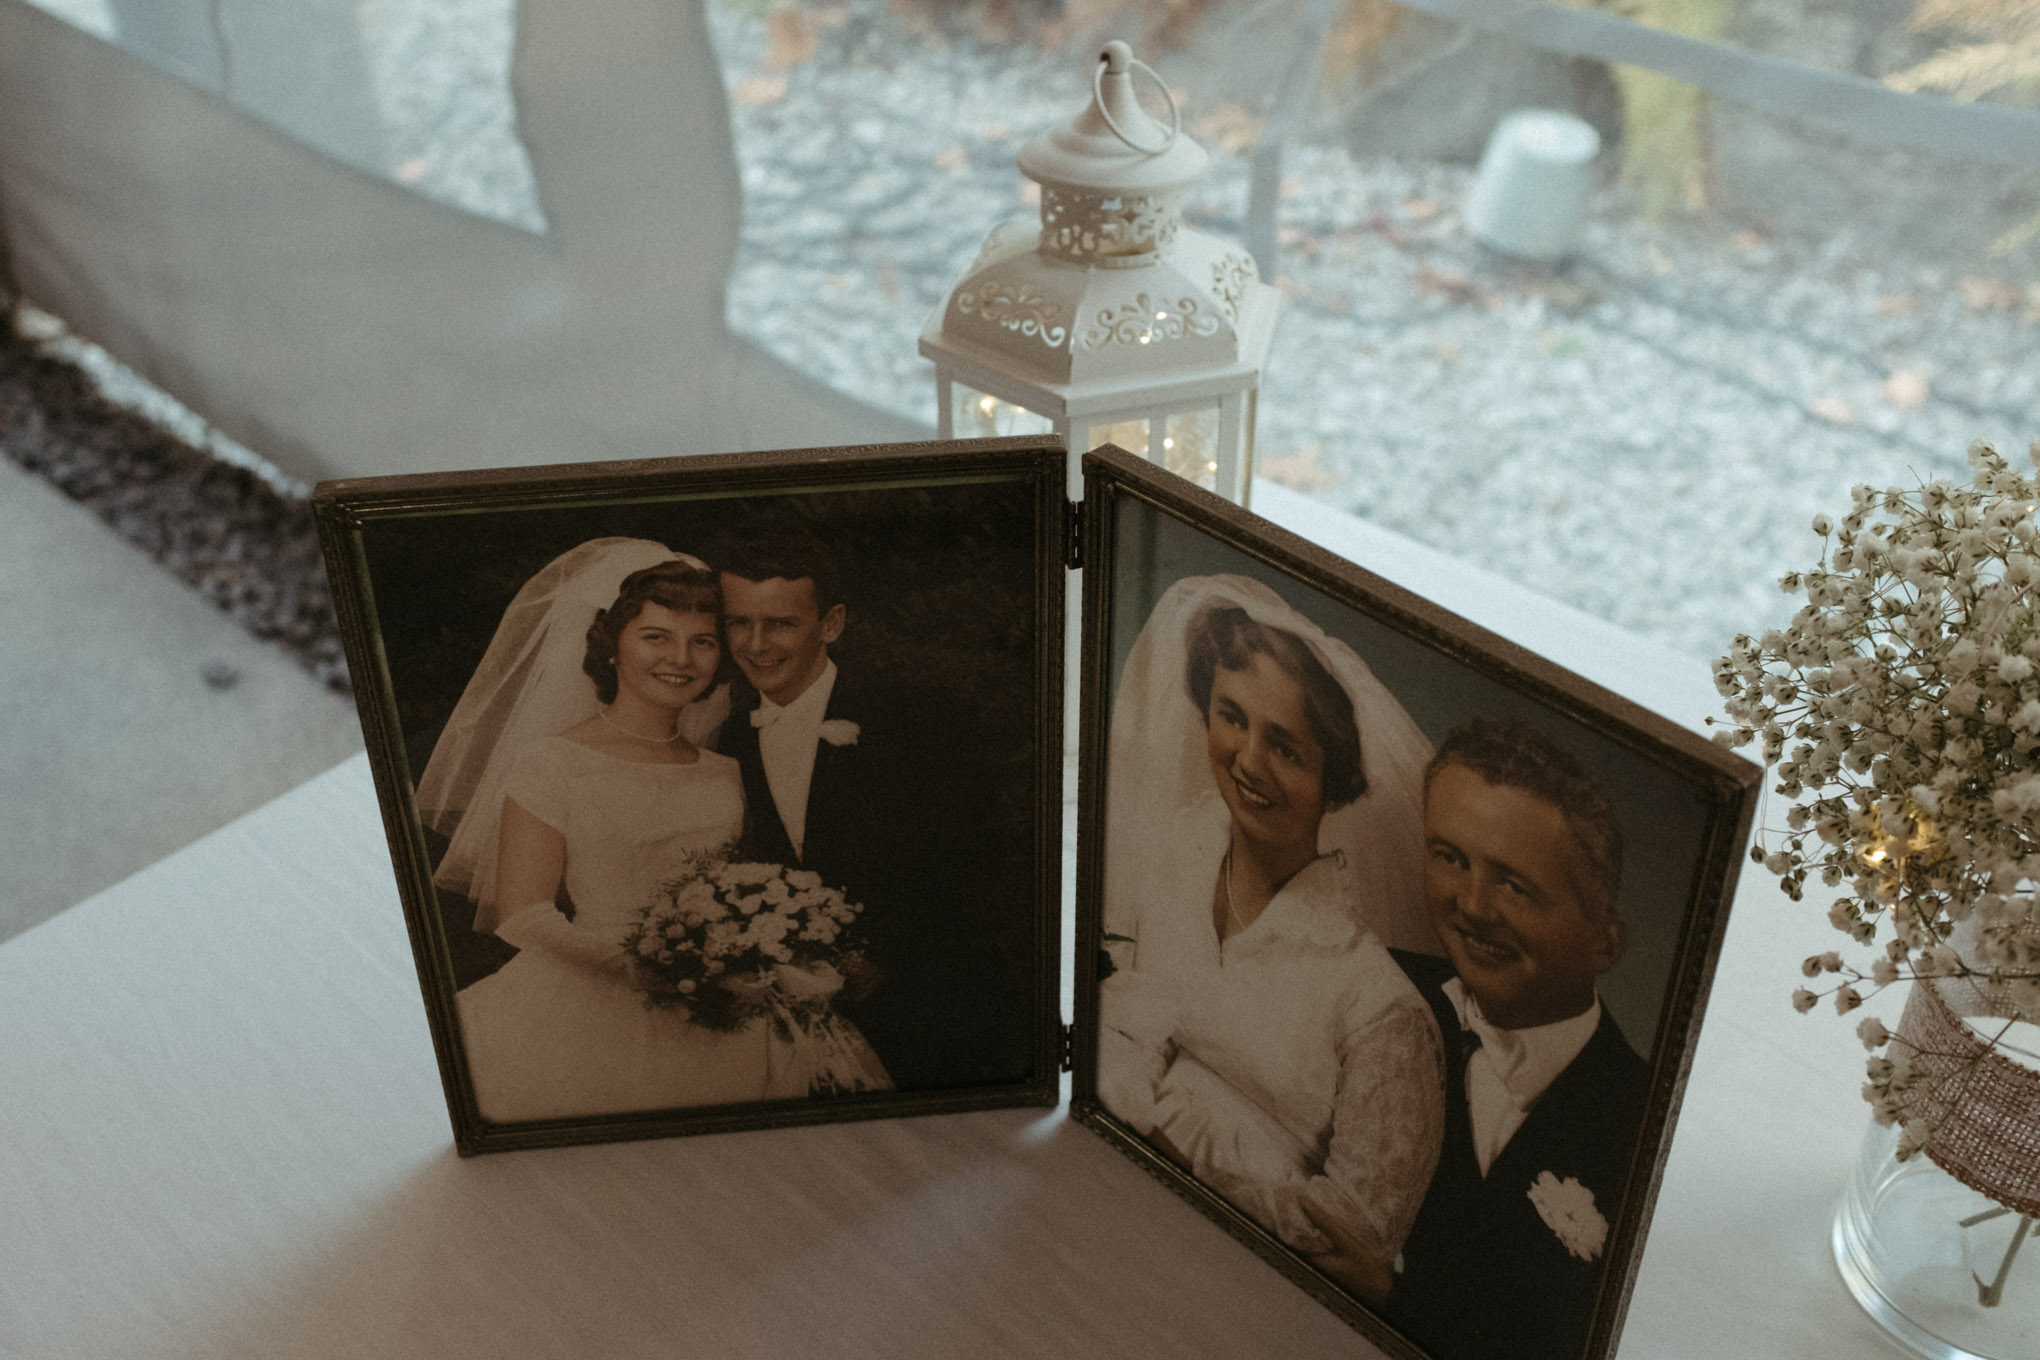 A wedding memorial table that show two sets of grandparents on their wedding day. One set are my grandparents, Judy and Bill Hogan, Sr.